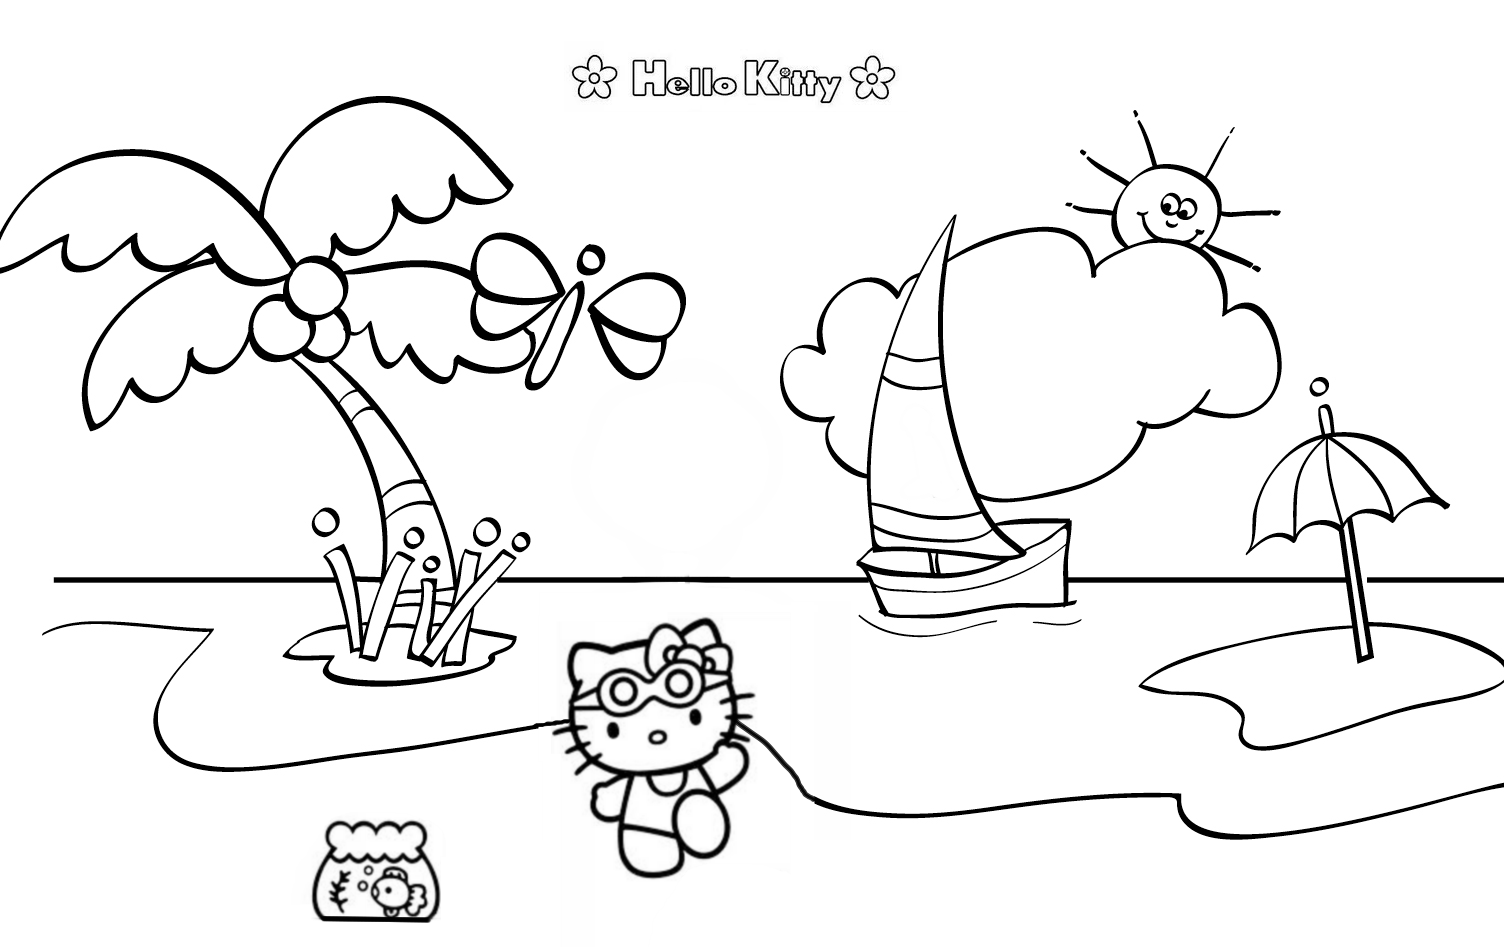 hello kitty beach coloring pages hello kitty at the beach coloring pages for kidsfree beach coloring hello kitty pages